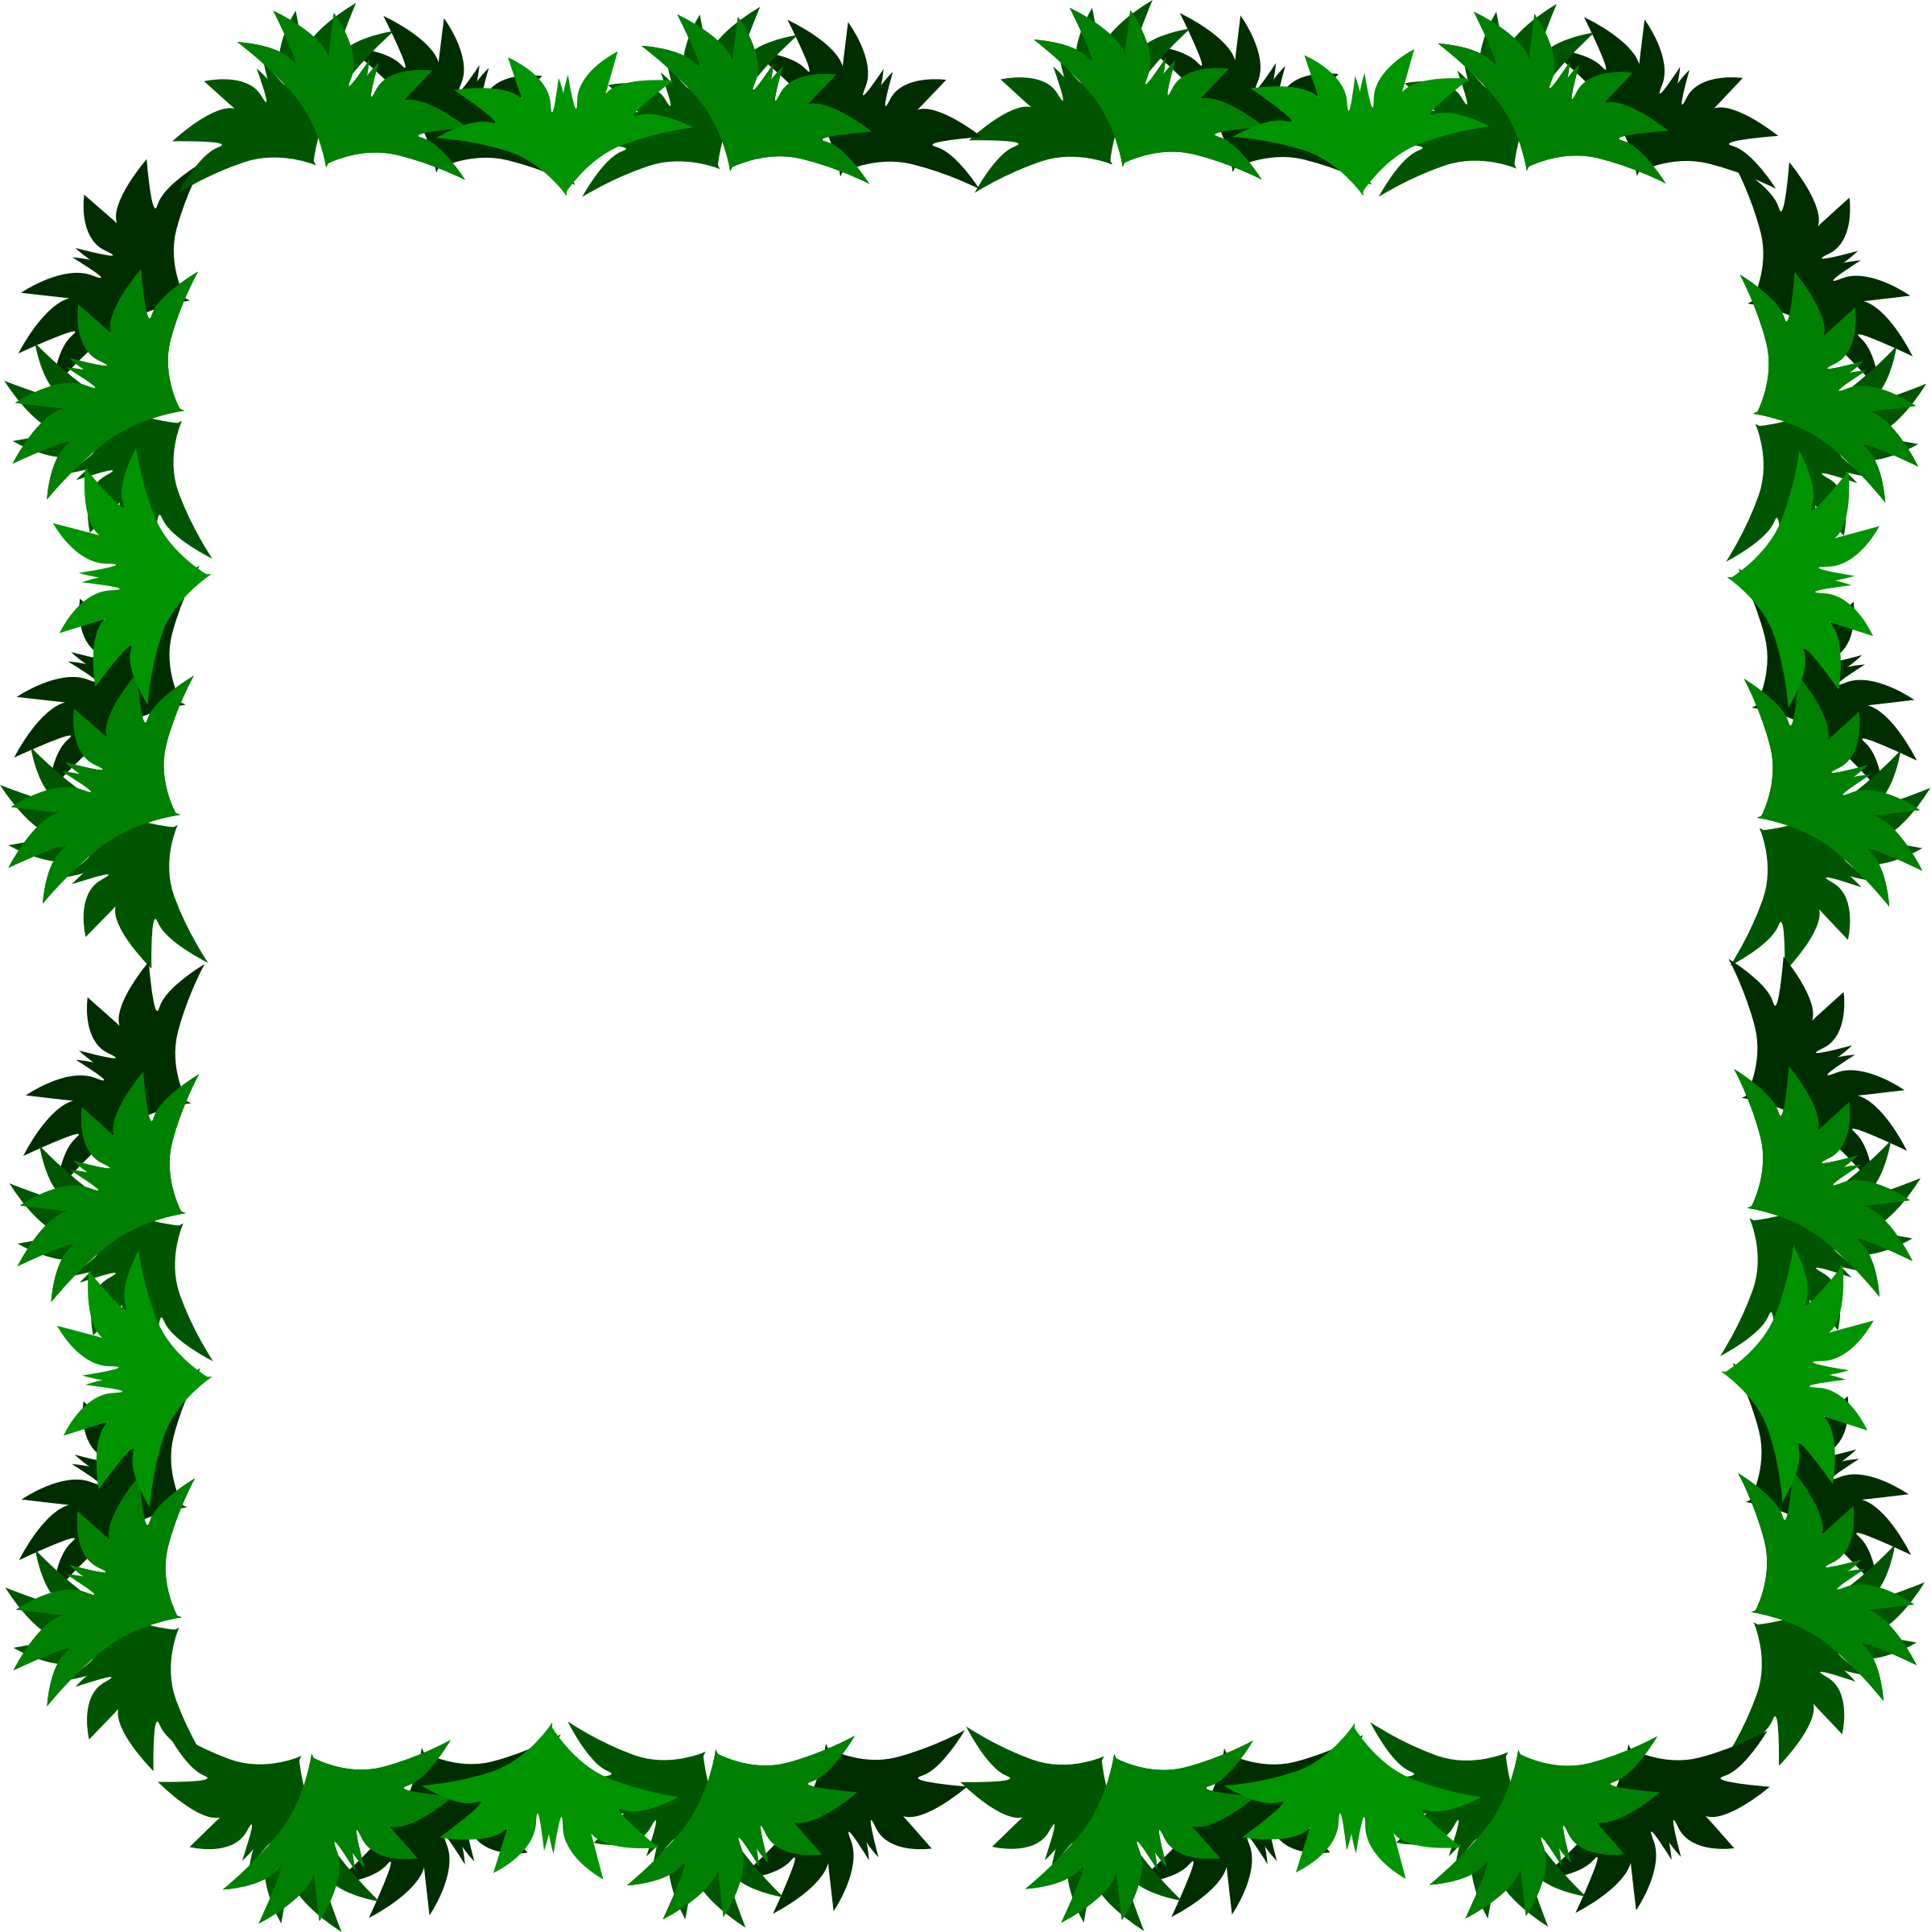 Grass clipart banner, Grass banner Transparent FREE for.